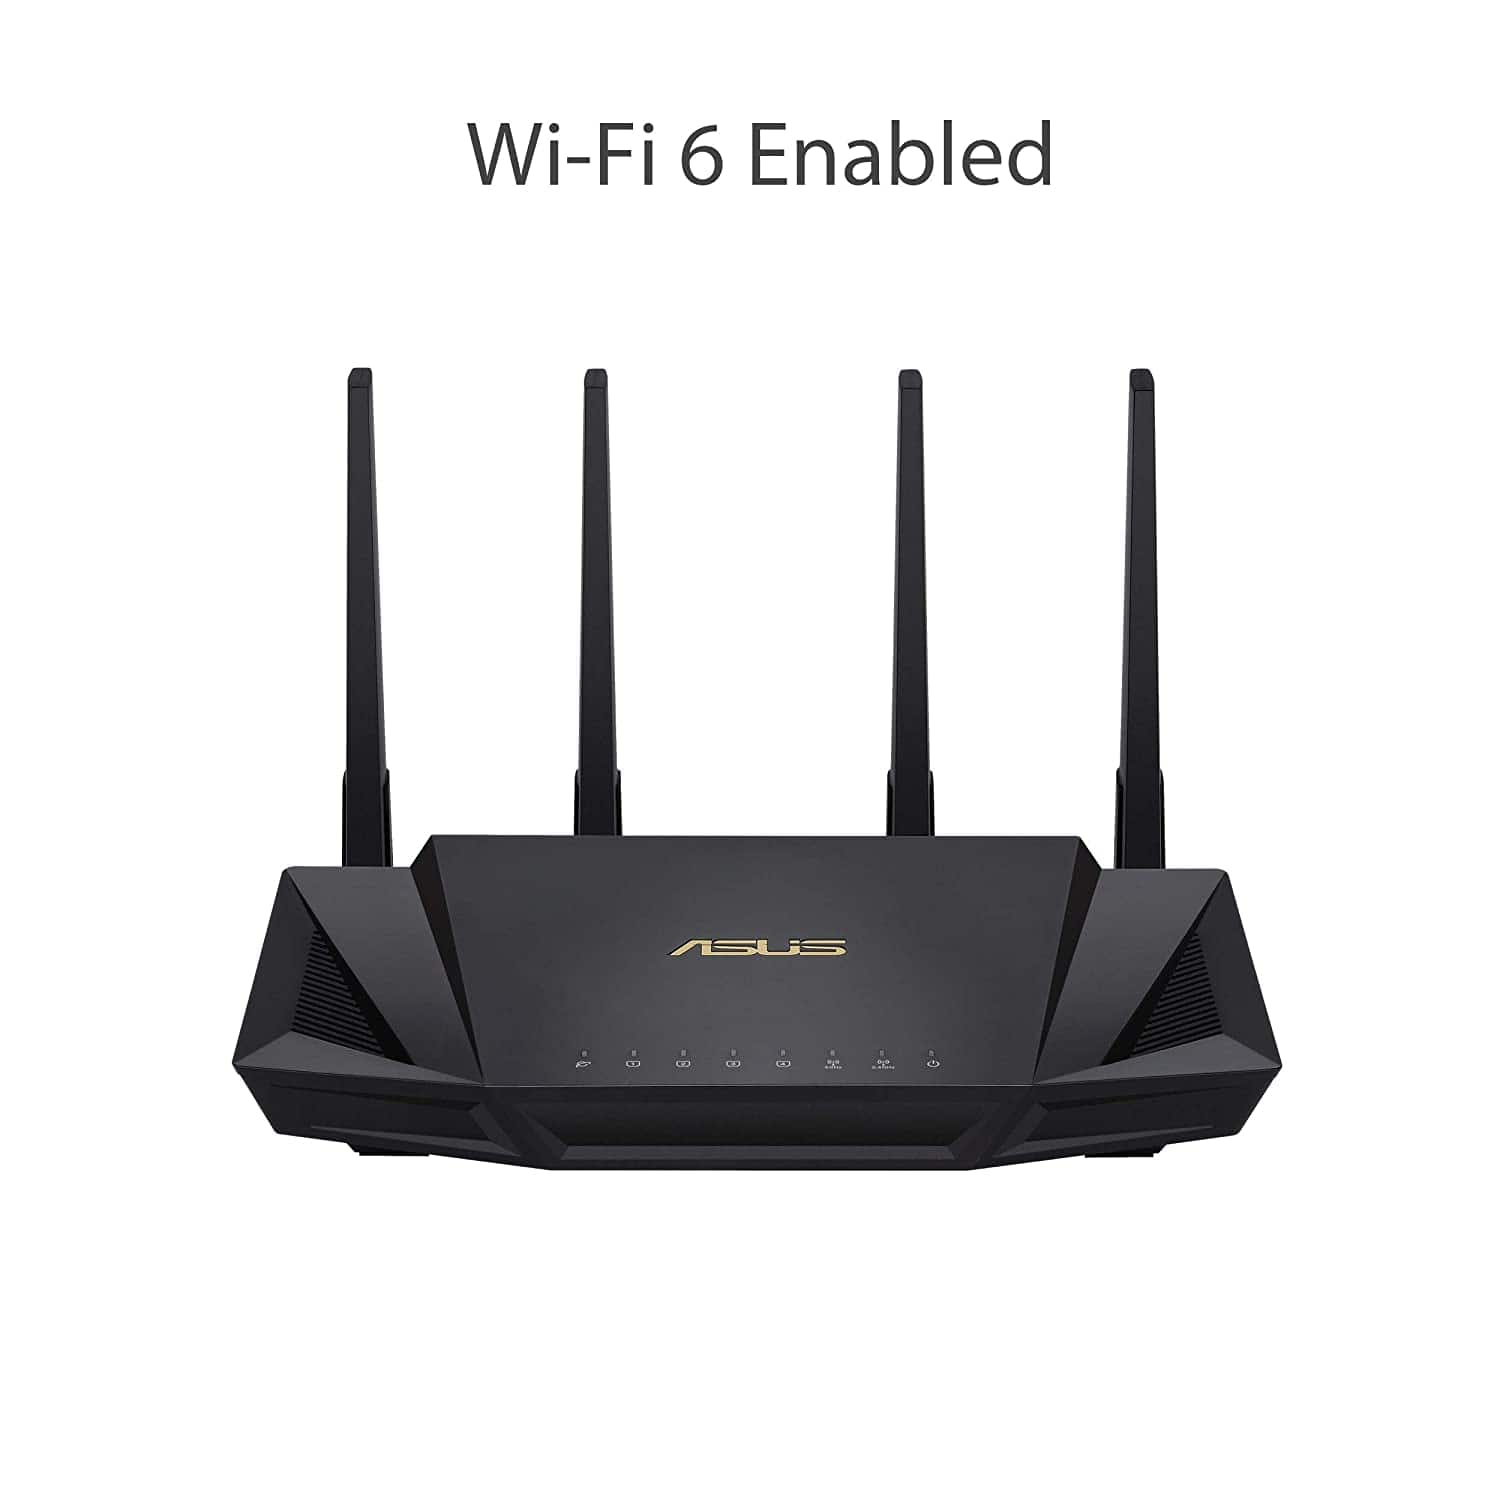 Asus RT-AX3000 Dual-Band WiFi 6 Router w/ AiMesh Support